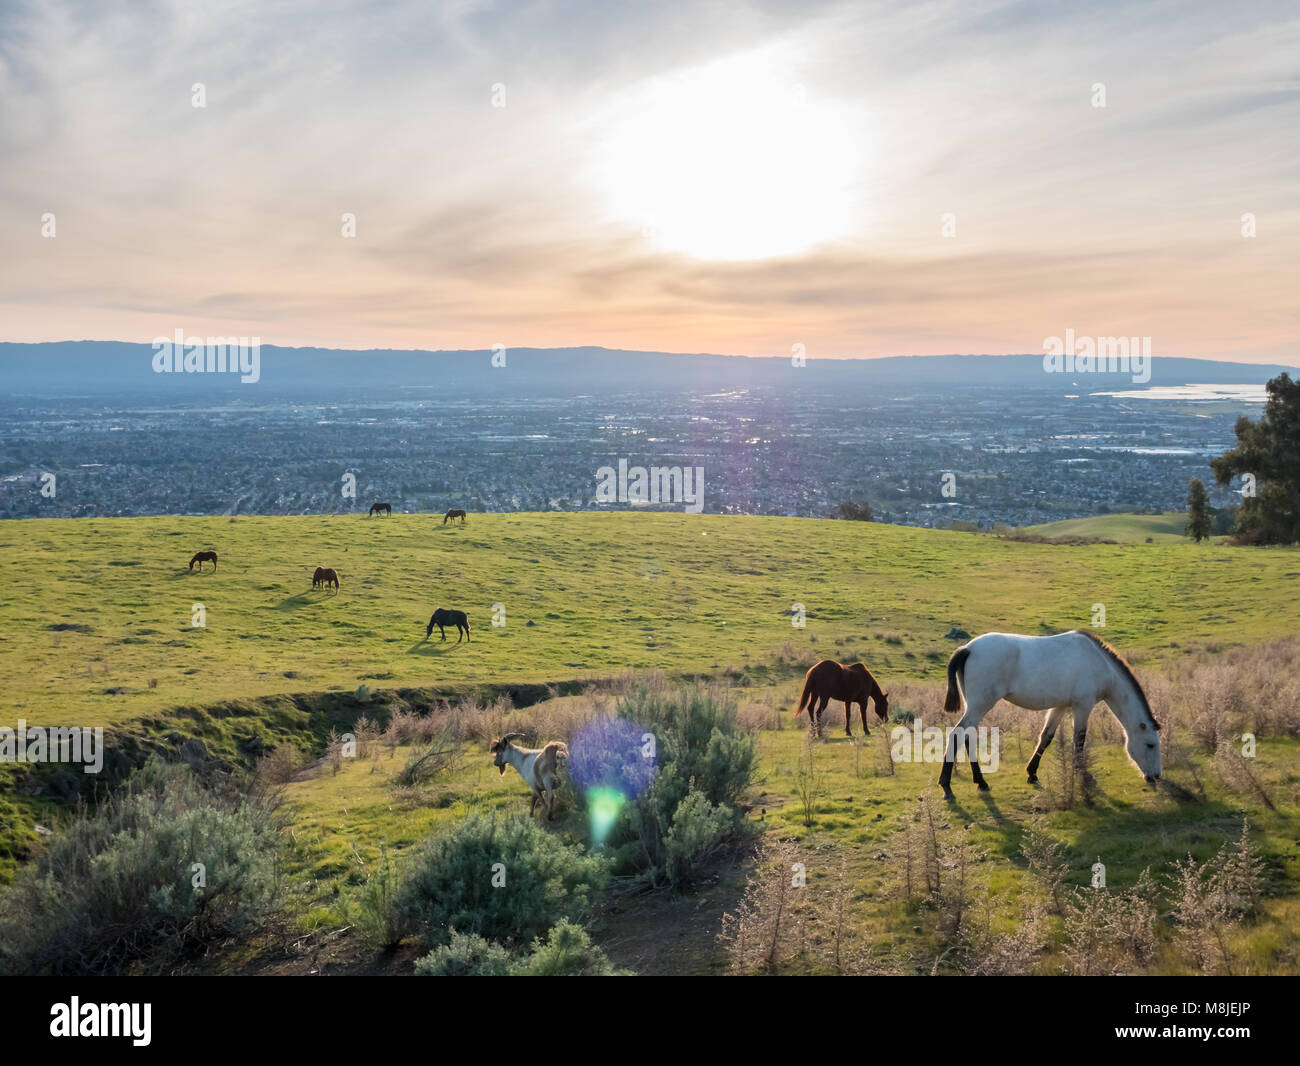 Houses on Green Grass with Silicon Valley in the Background at Sunset - Stock Image